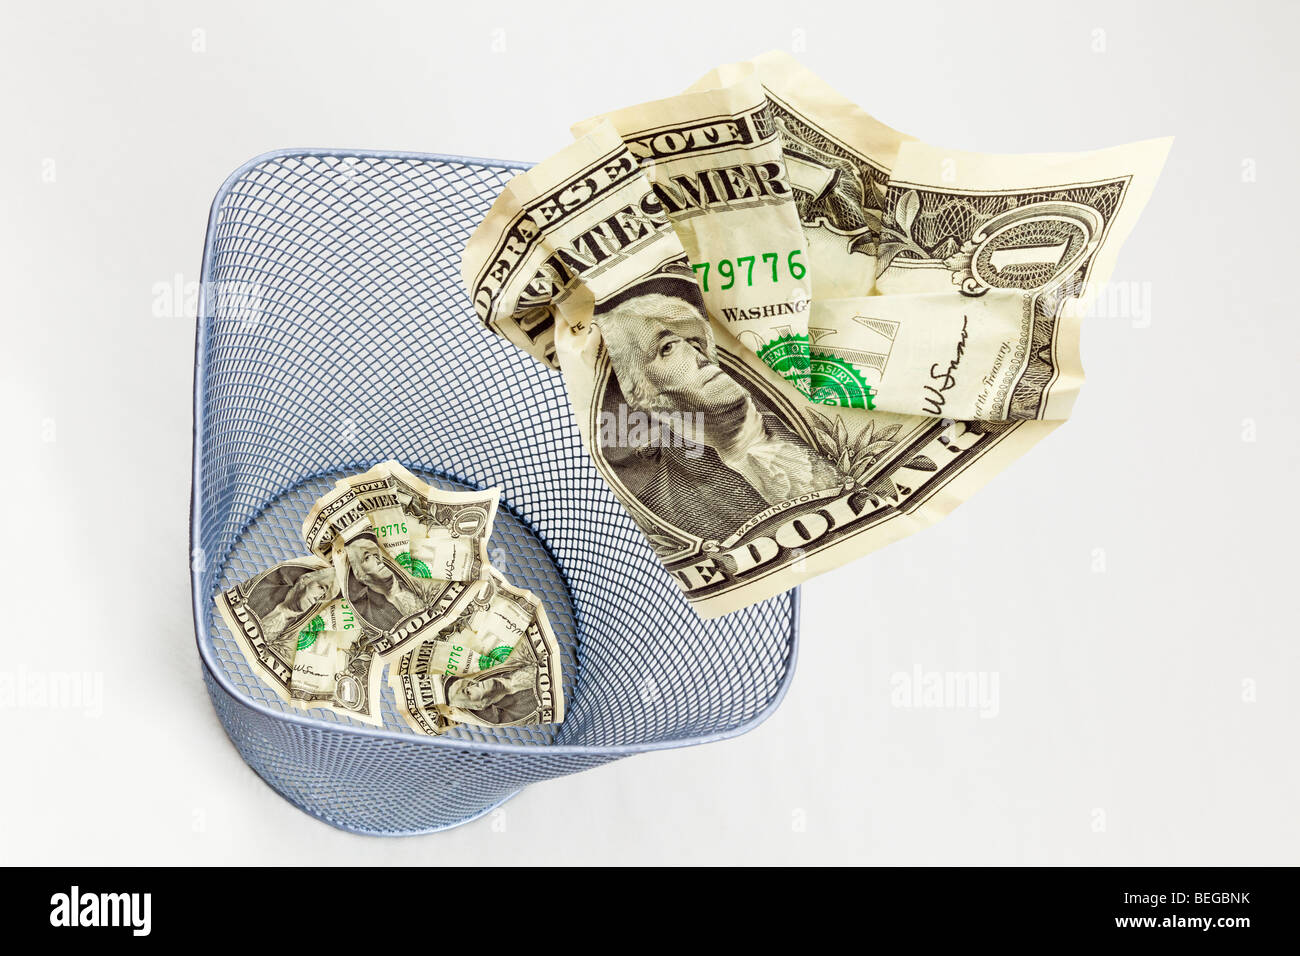 composite image of US dollar bills dollars being thrown into a waste paper bin on plain background from above to - Stock Image